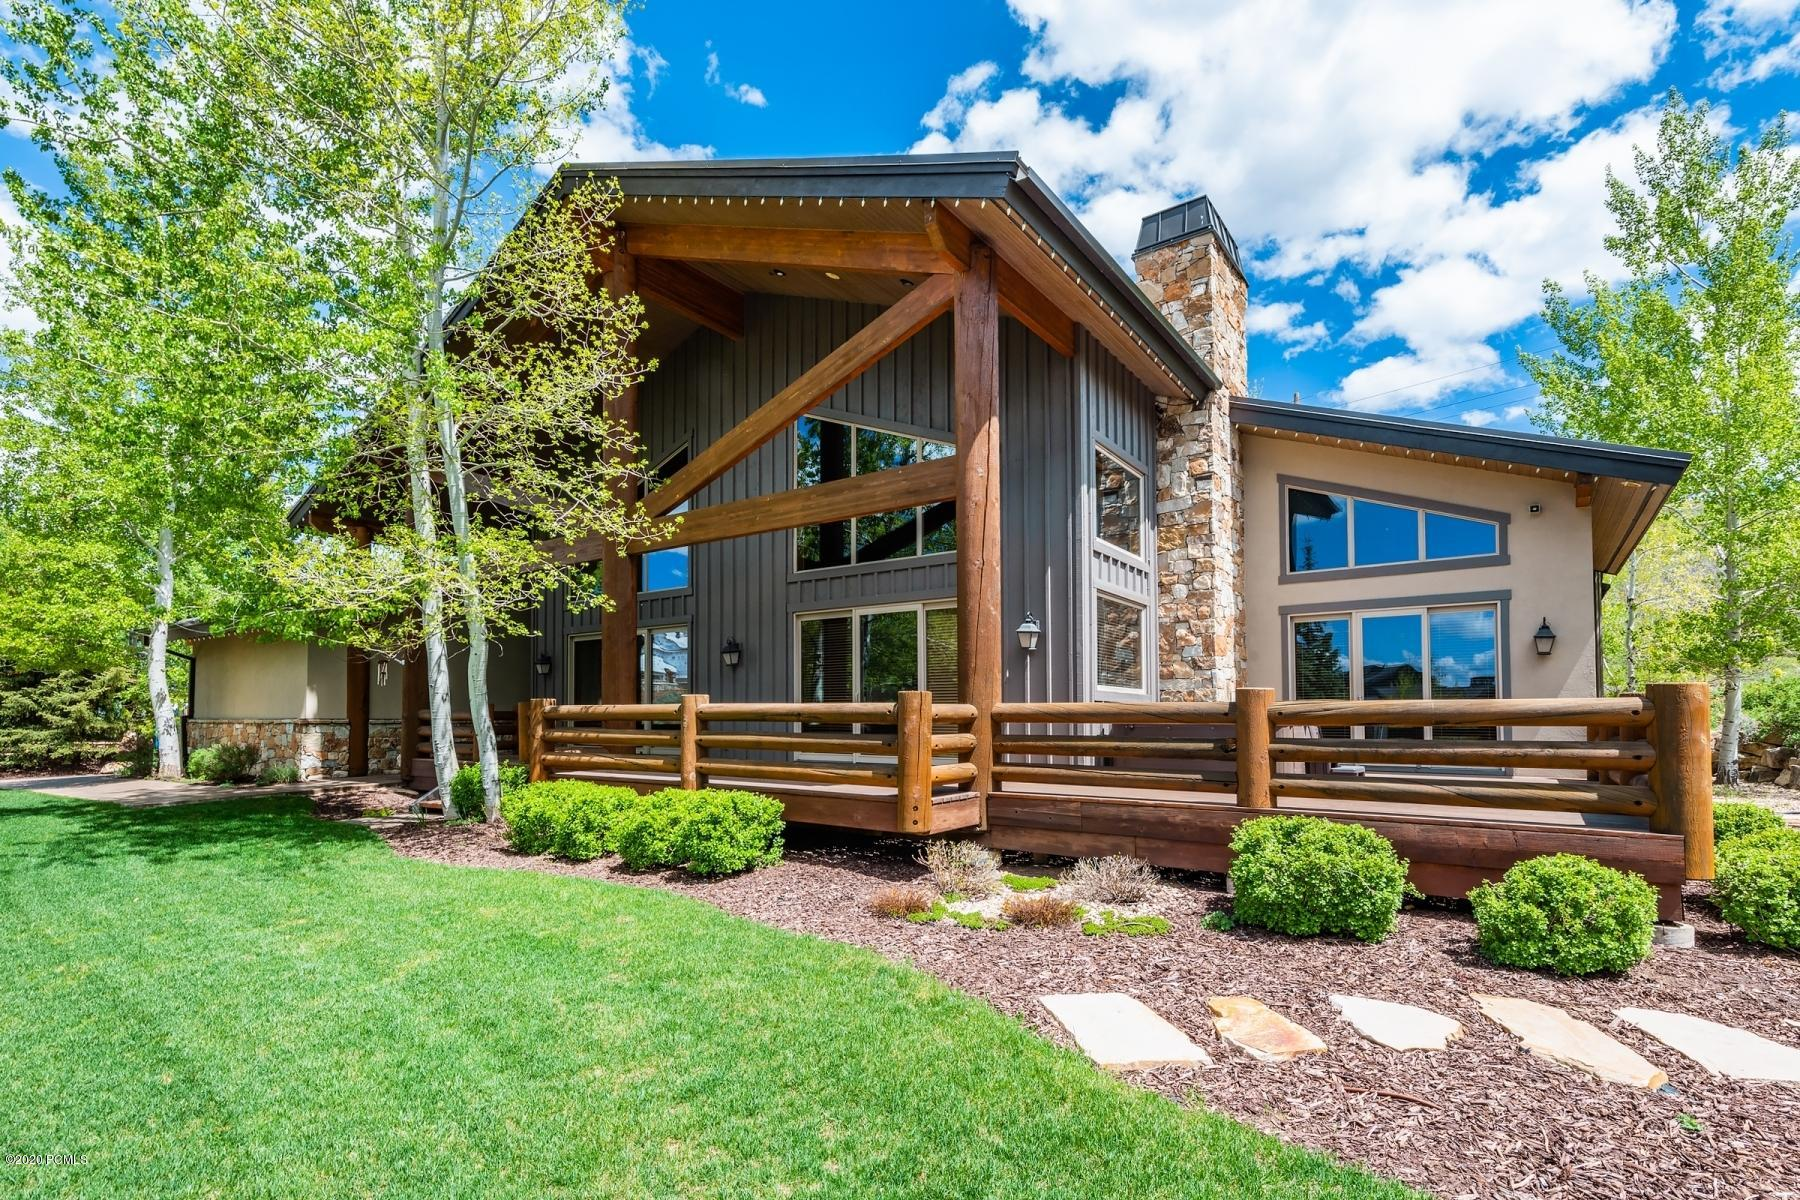 3682 Solamere Drive, Park City, Utah 84060, 5 Bedrooms Bedrooms, ,6 BathroomsBathrooms,Single Family,For Sale,Solamere,20190109112430415765000000